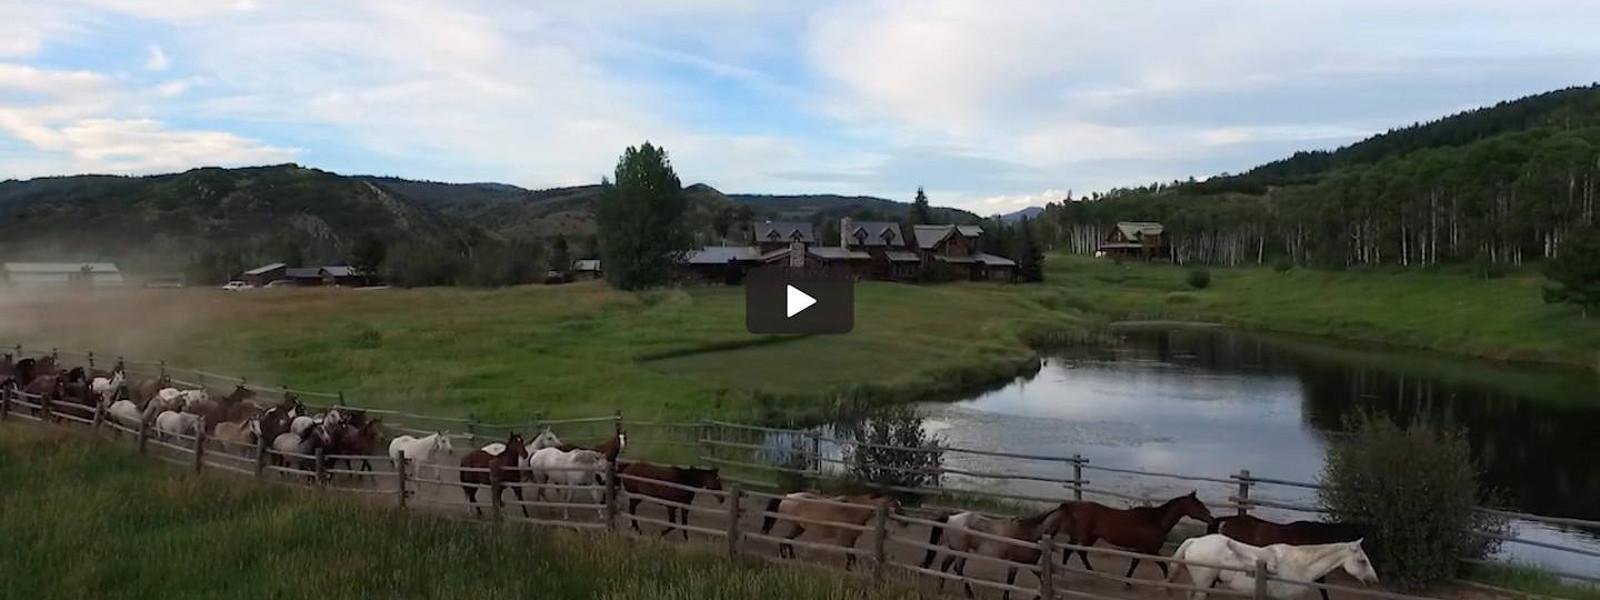 Luxury Colorado Resort Relais Chateaux Vacation